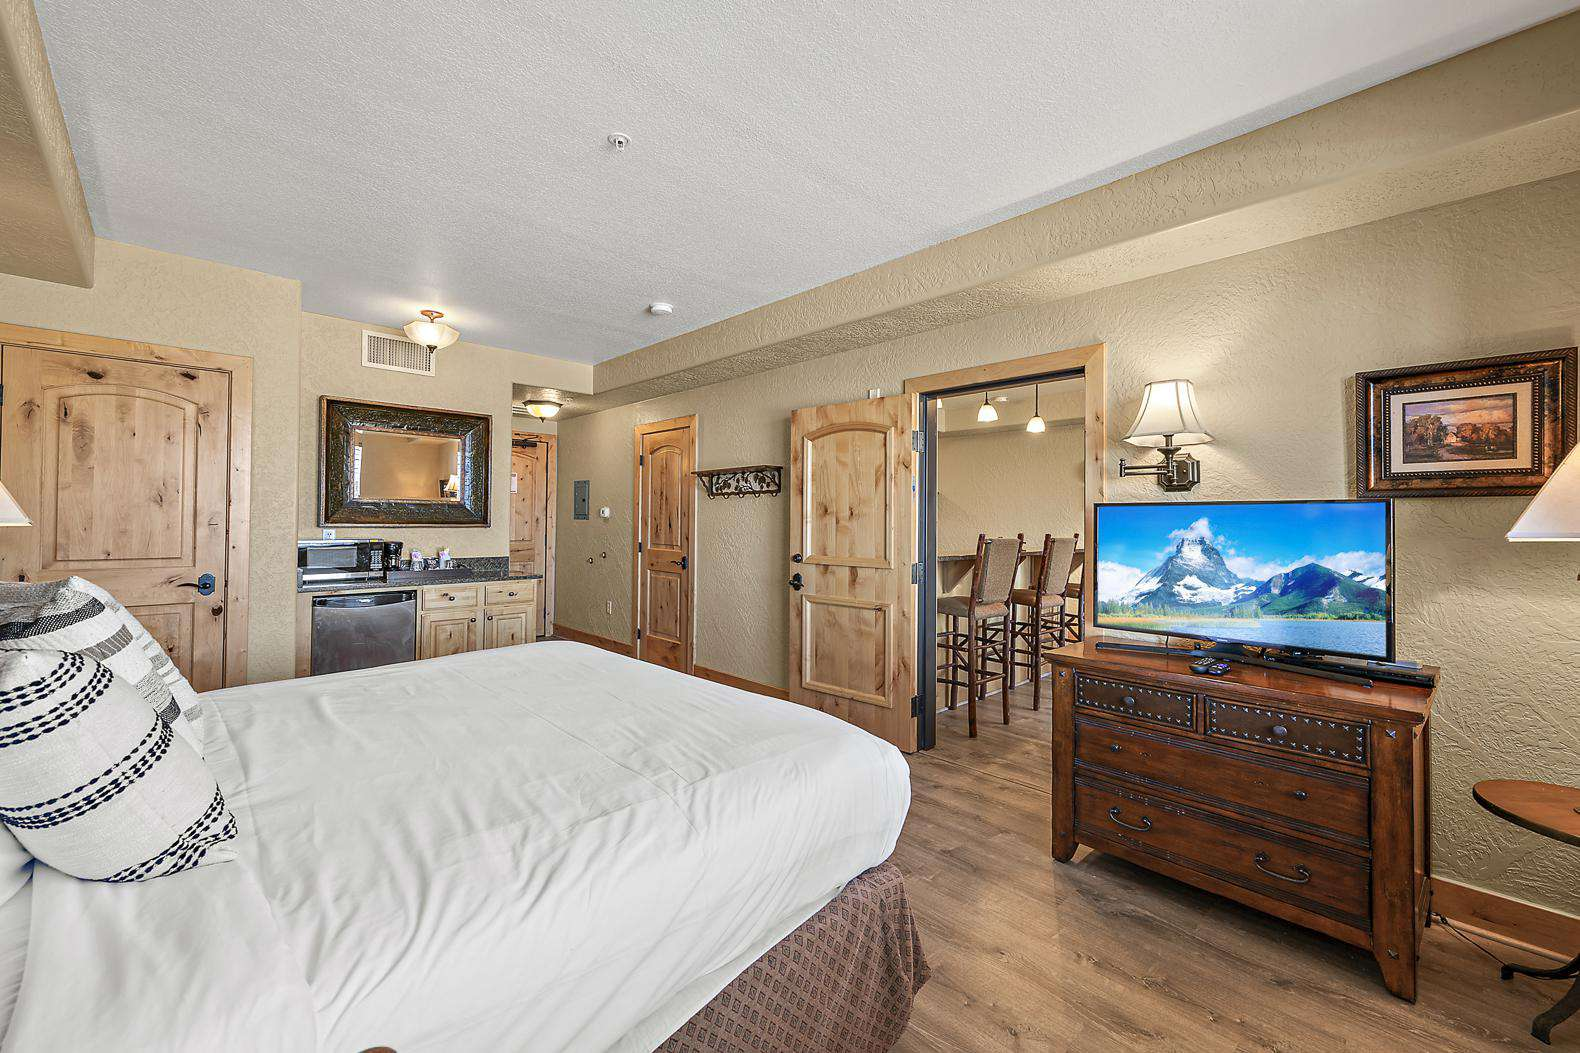 Spacious master bedroom with queen bed, tv, and dresser